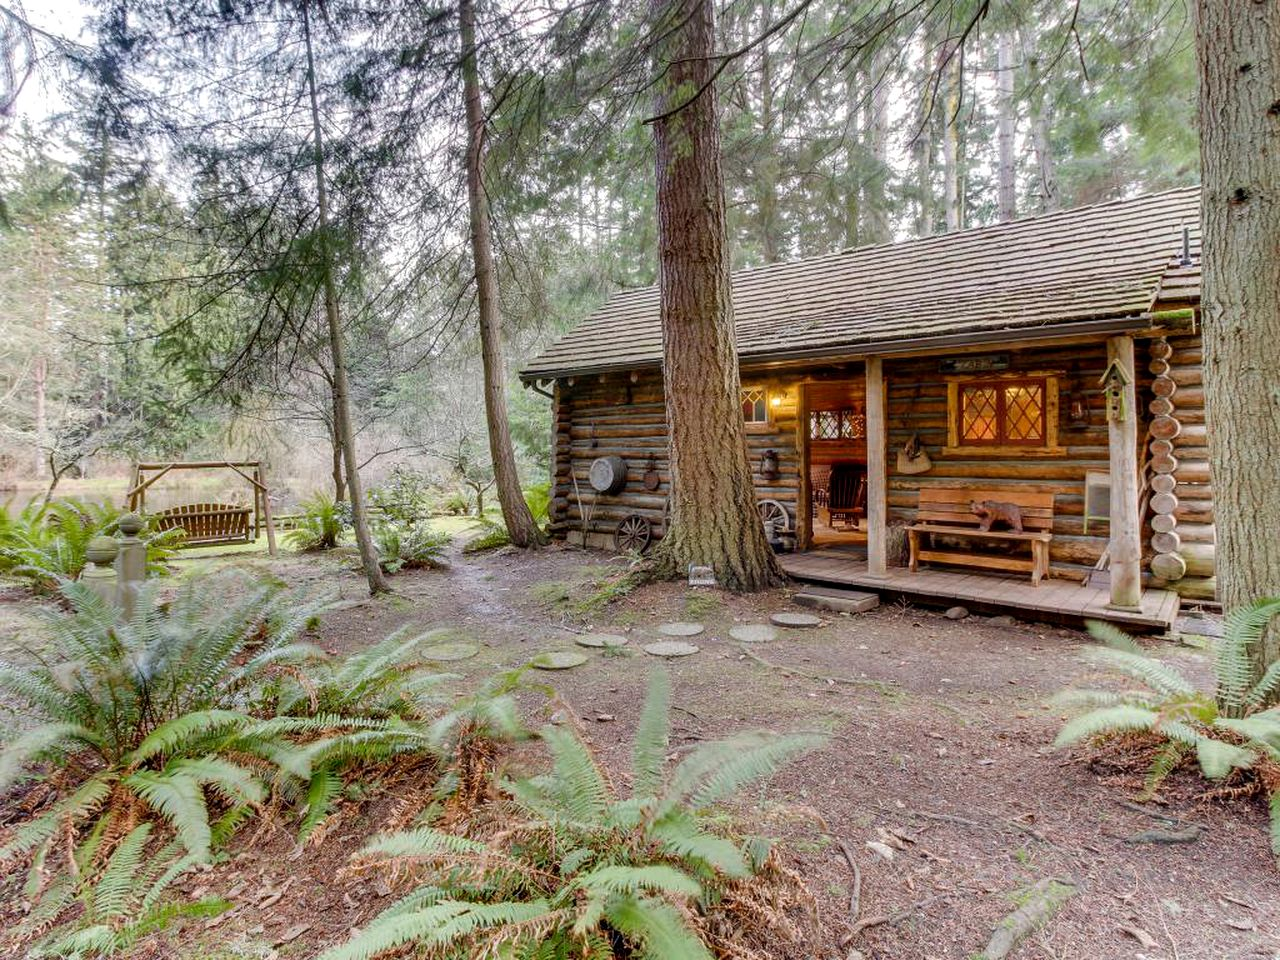 Cabins (Greenbank, Washington, United States)